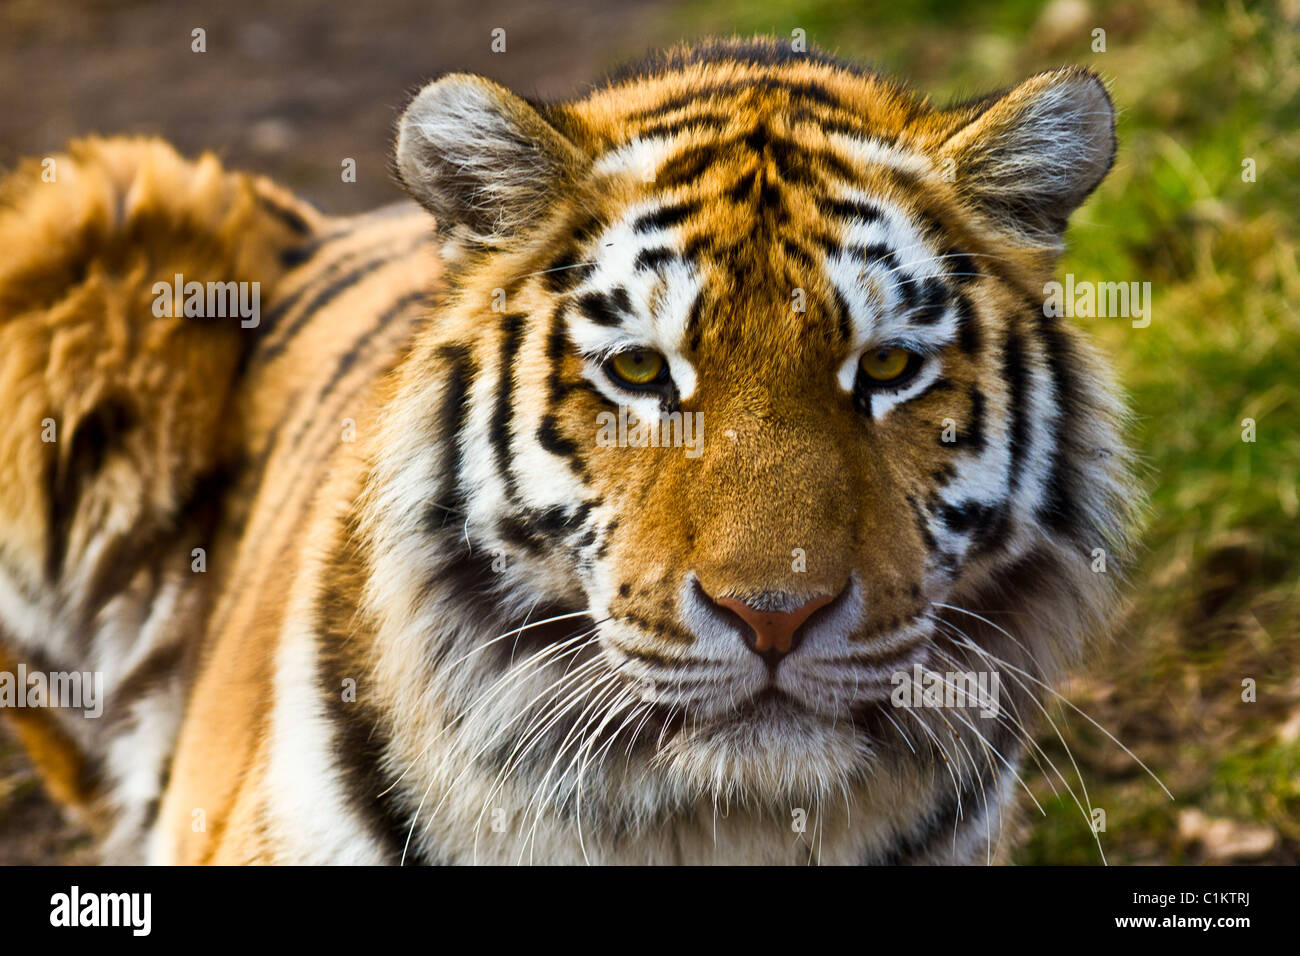 Closeup of tiger relaxing in the sun - Stock Image